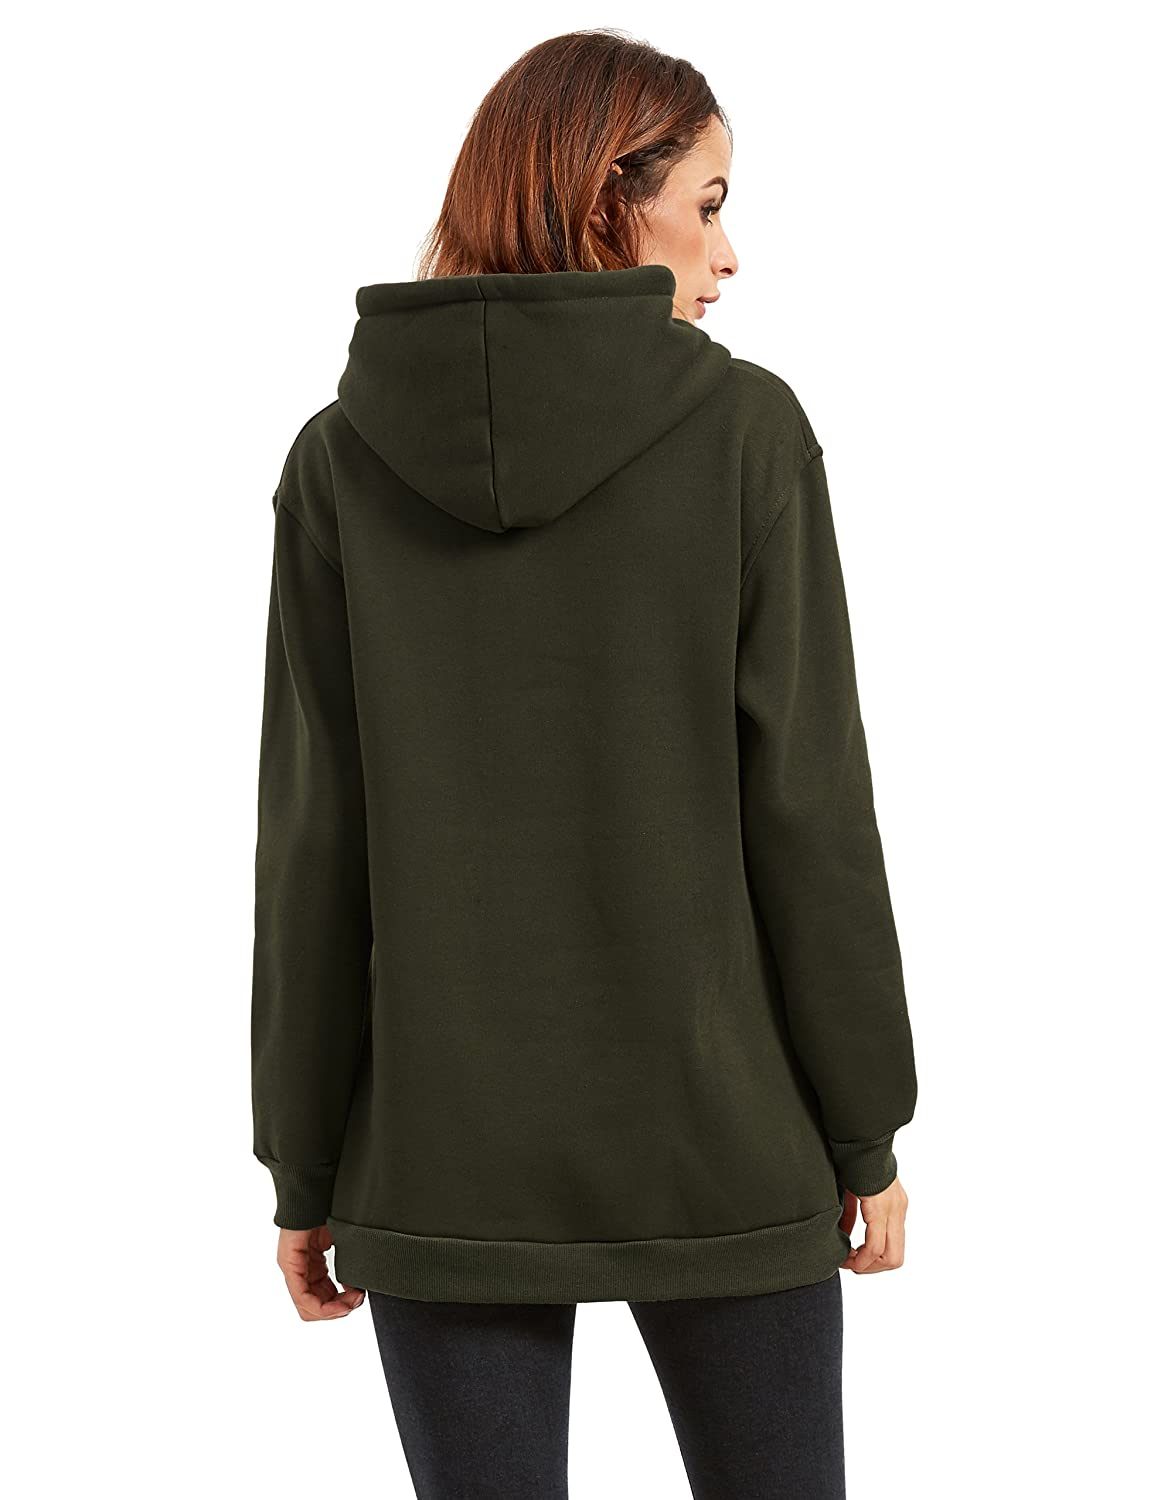 9f166f12d19ca9 SheIn Women's Long Sleeve Zipper Loose Pullover Hoodie at Amazon Women's  Clothing store: